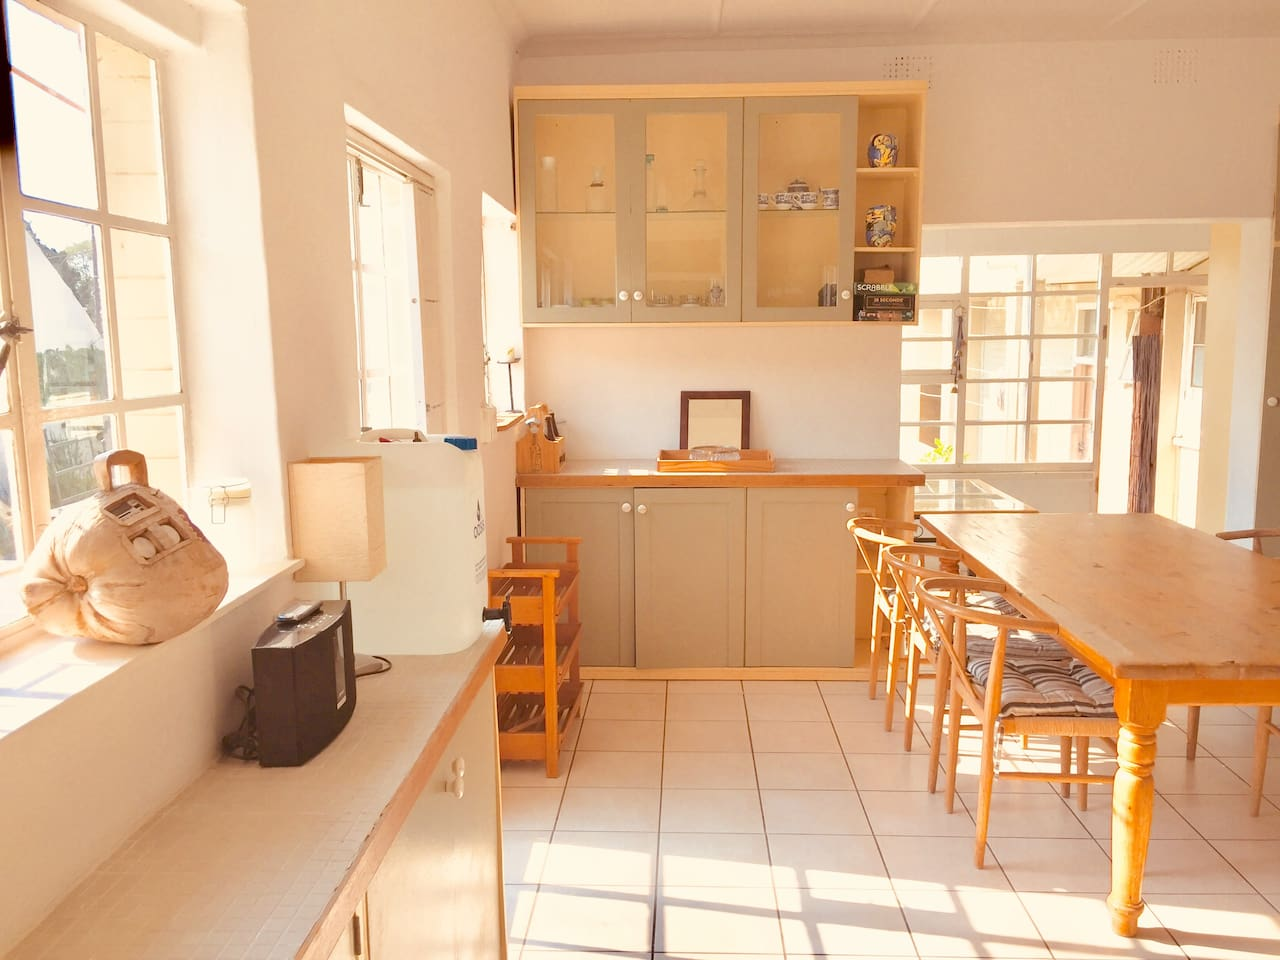 Warm sun-drenched  kitchen with french doors opening up onto patio with loungers at the pool. Barbecue facilities available.